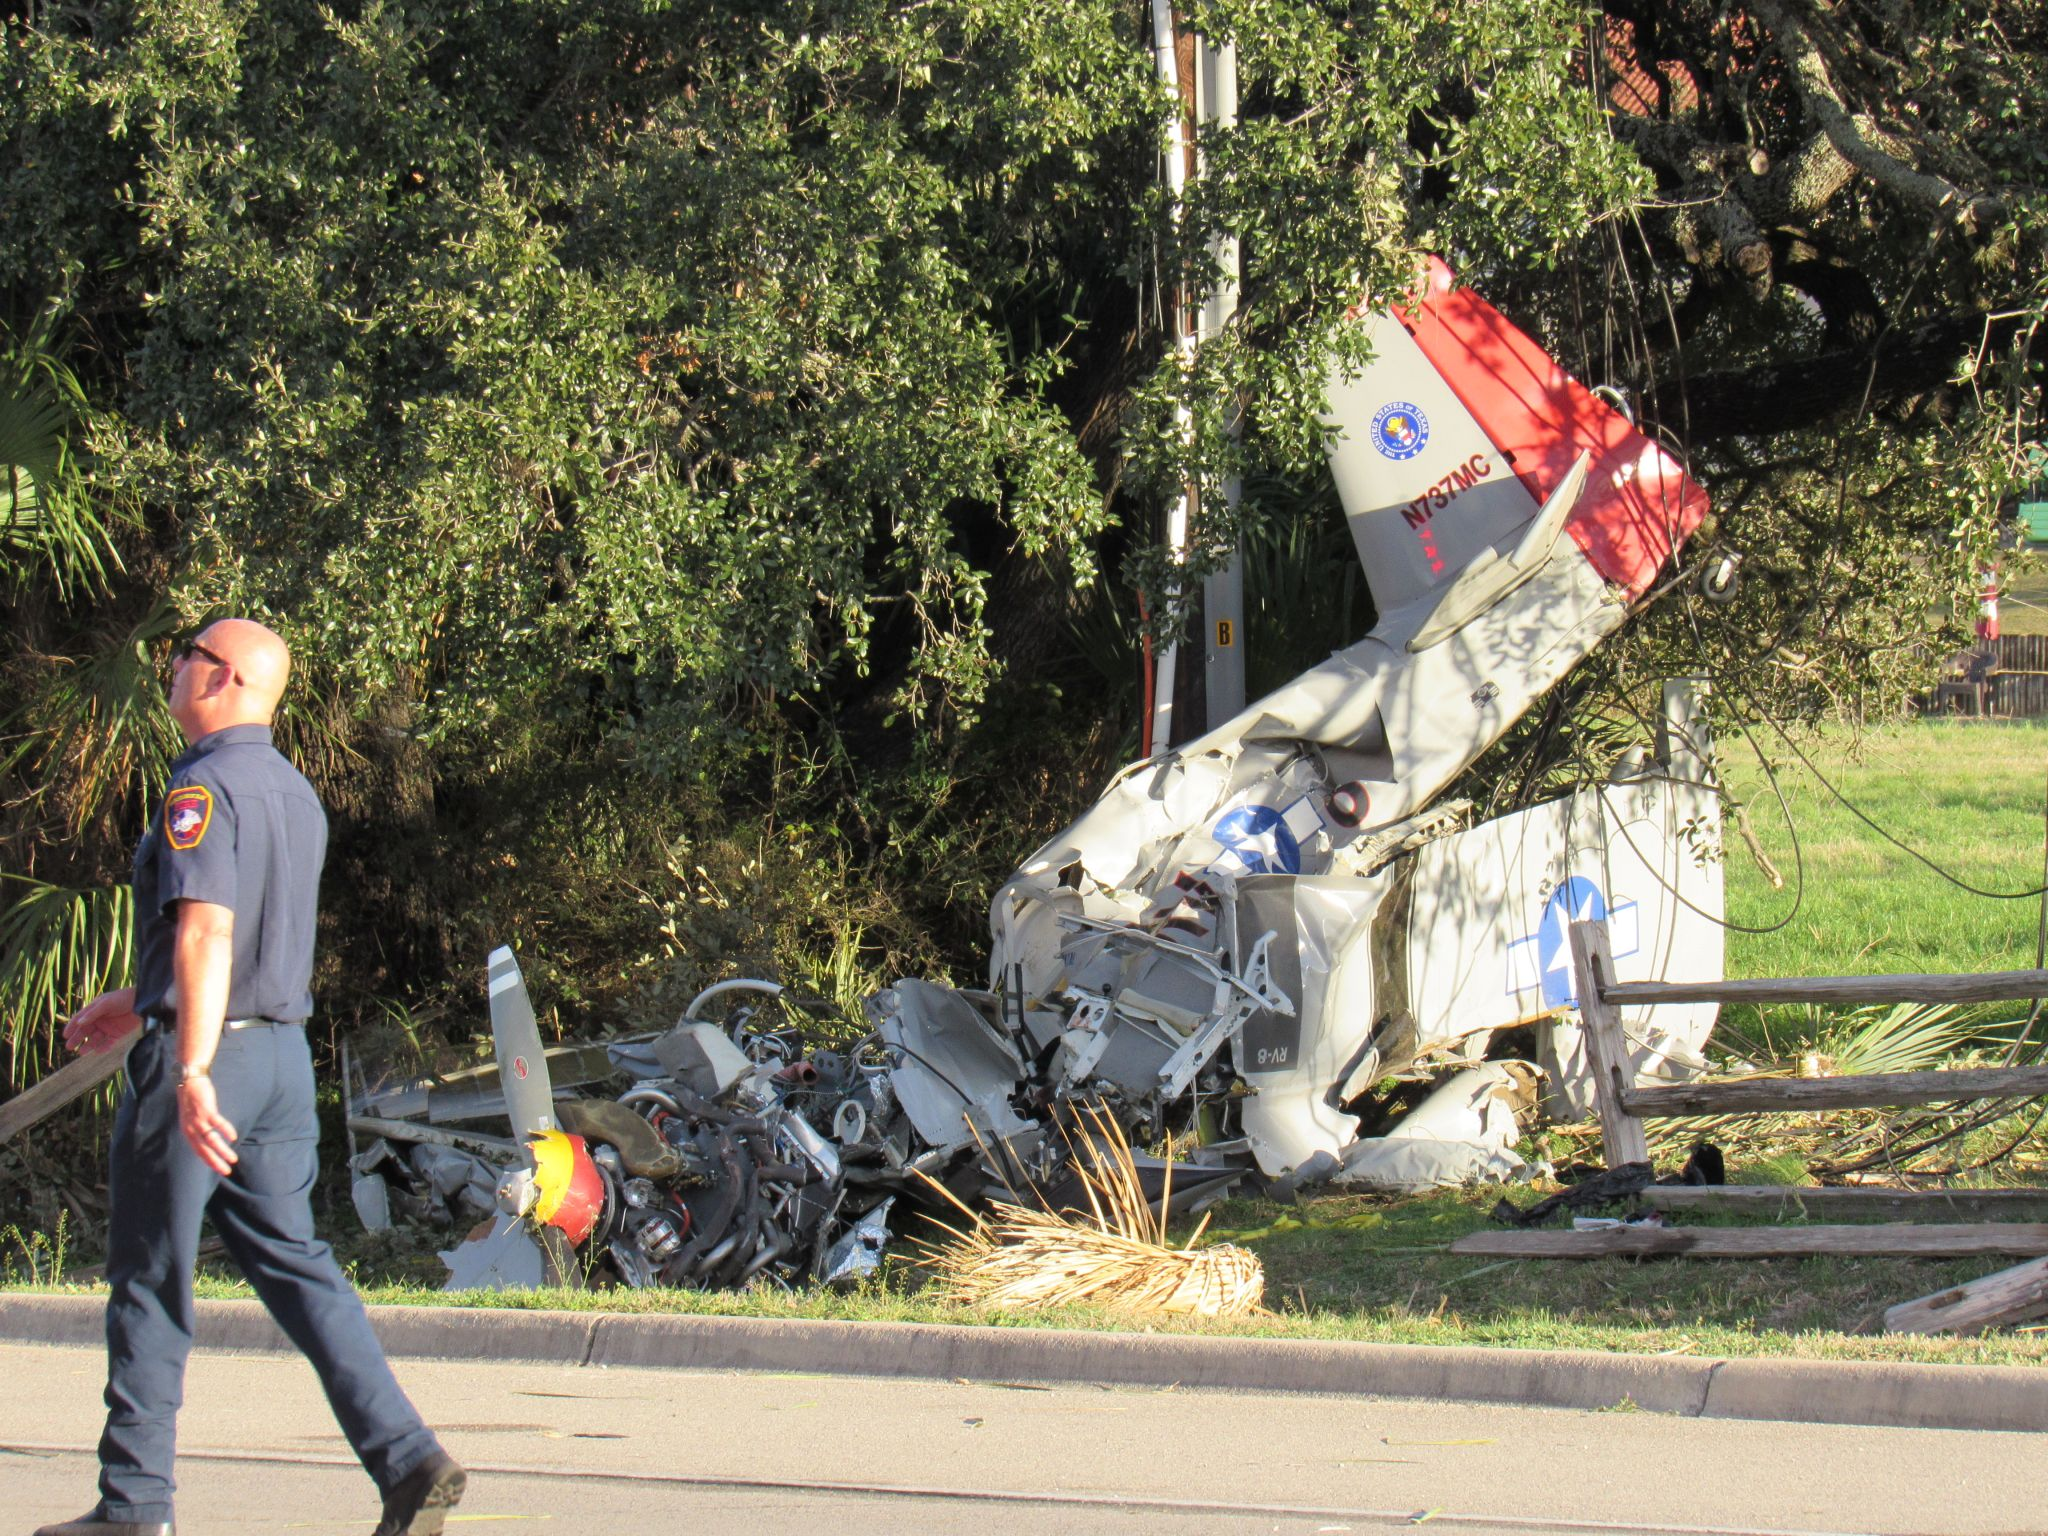 Two men injured after 'experimental' aircraft crashes Friday north